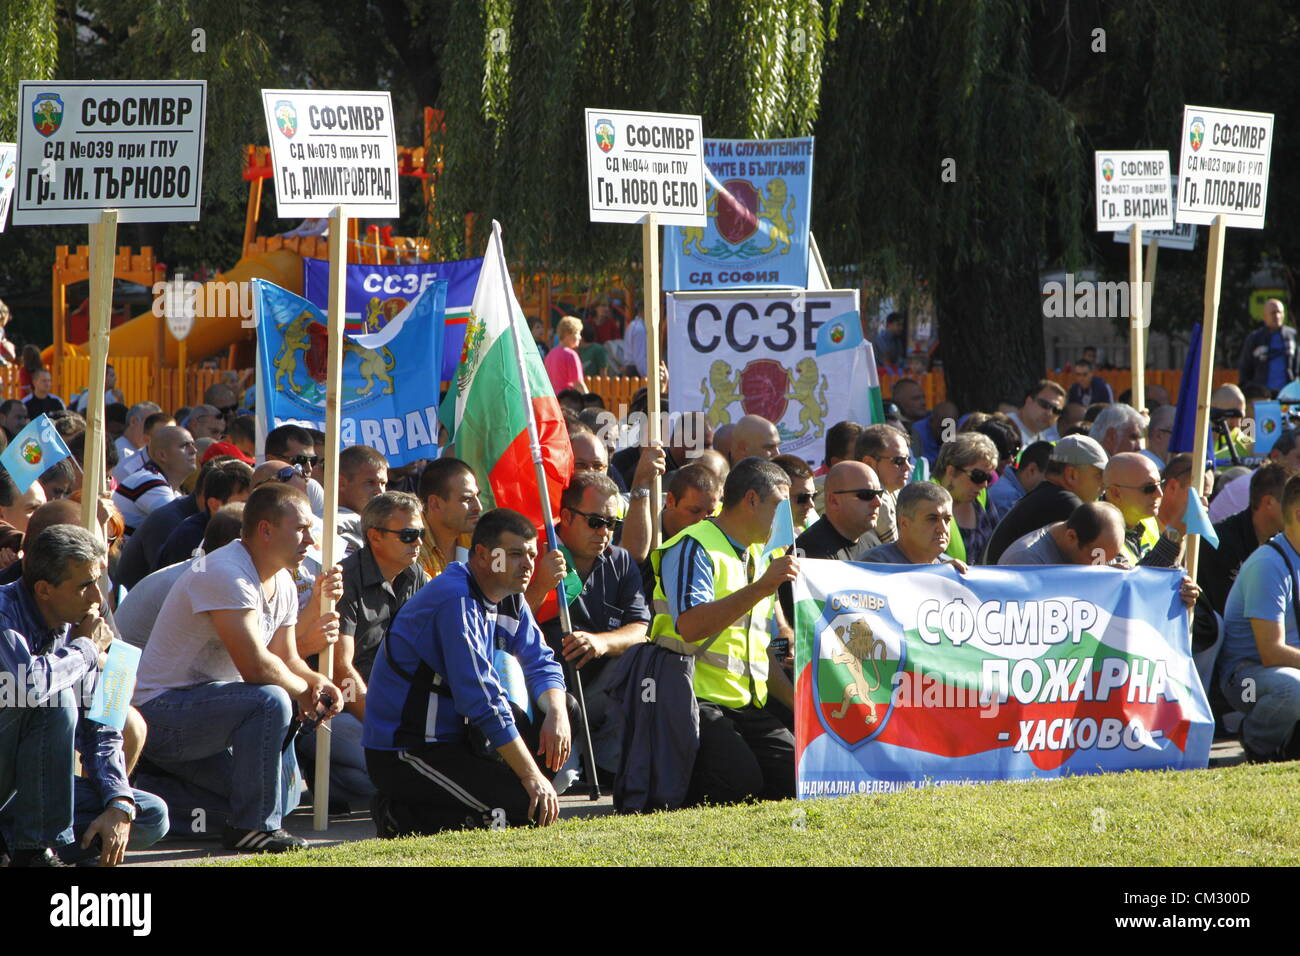 Demonstrators kneeling at the beginning of the rally to keep the customary minute of silence. The signs show the - Stock Image